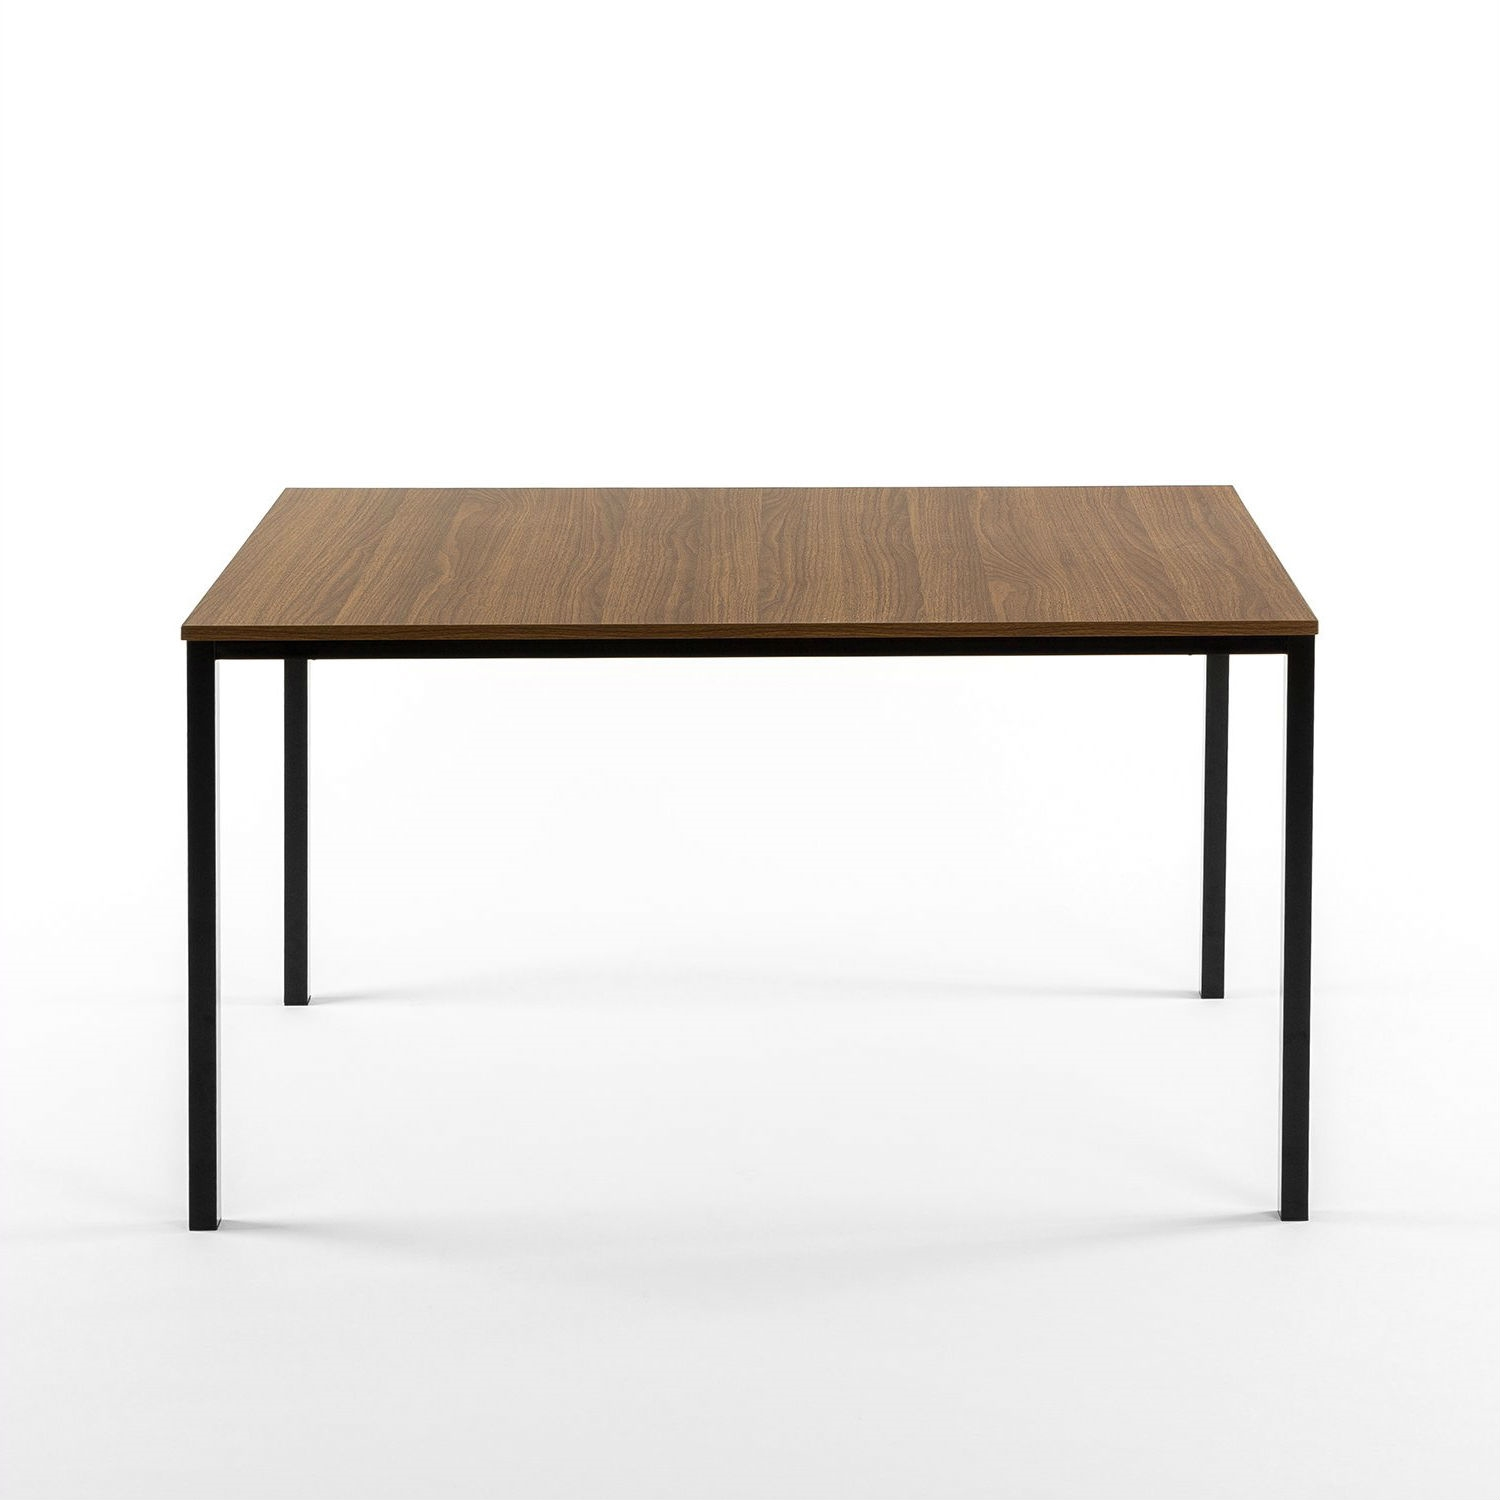 Modern 48 X 30 Inch Steel Frame Dining Table With Wood Grain Top